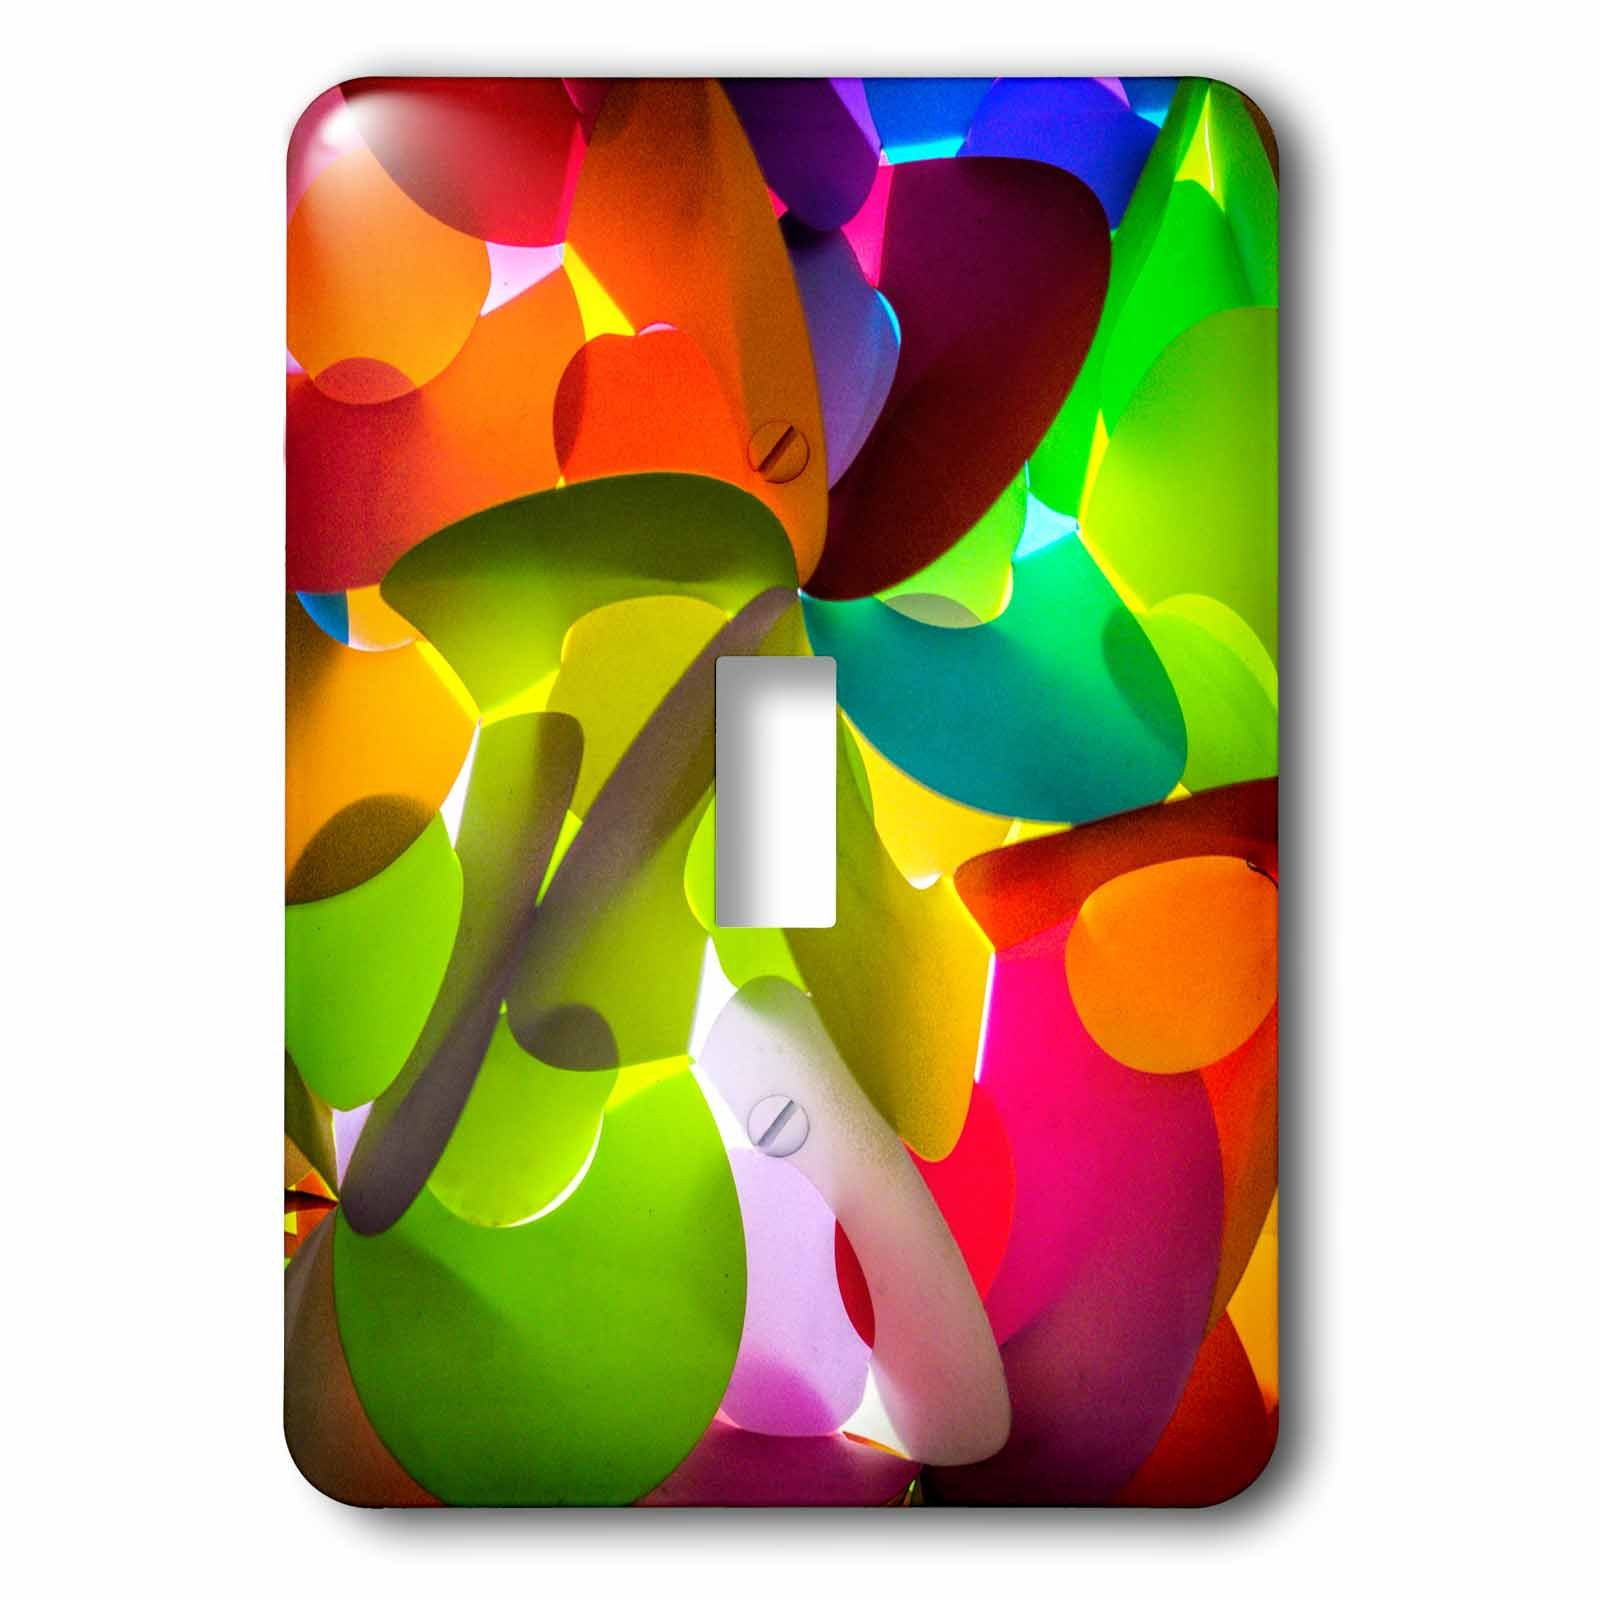 3dRose Danita Delimont - Abstracts - Thailand, Chiang Mai, Thai Market Place - Light Switch Covers - single toggle switch (lsp_276975_1)